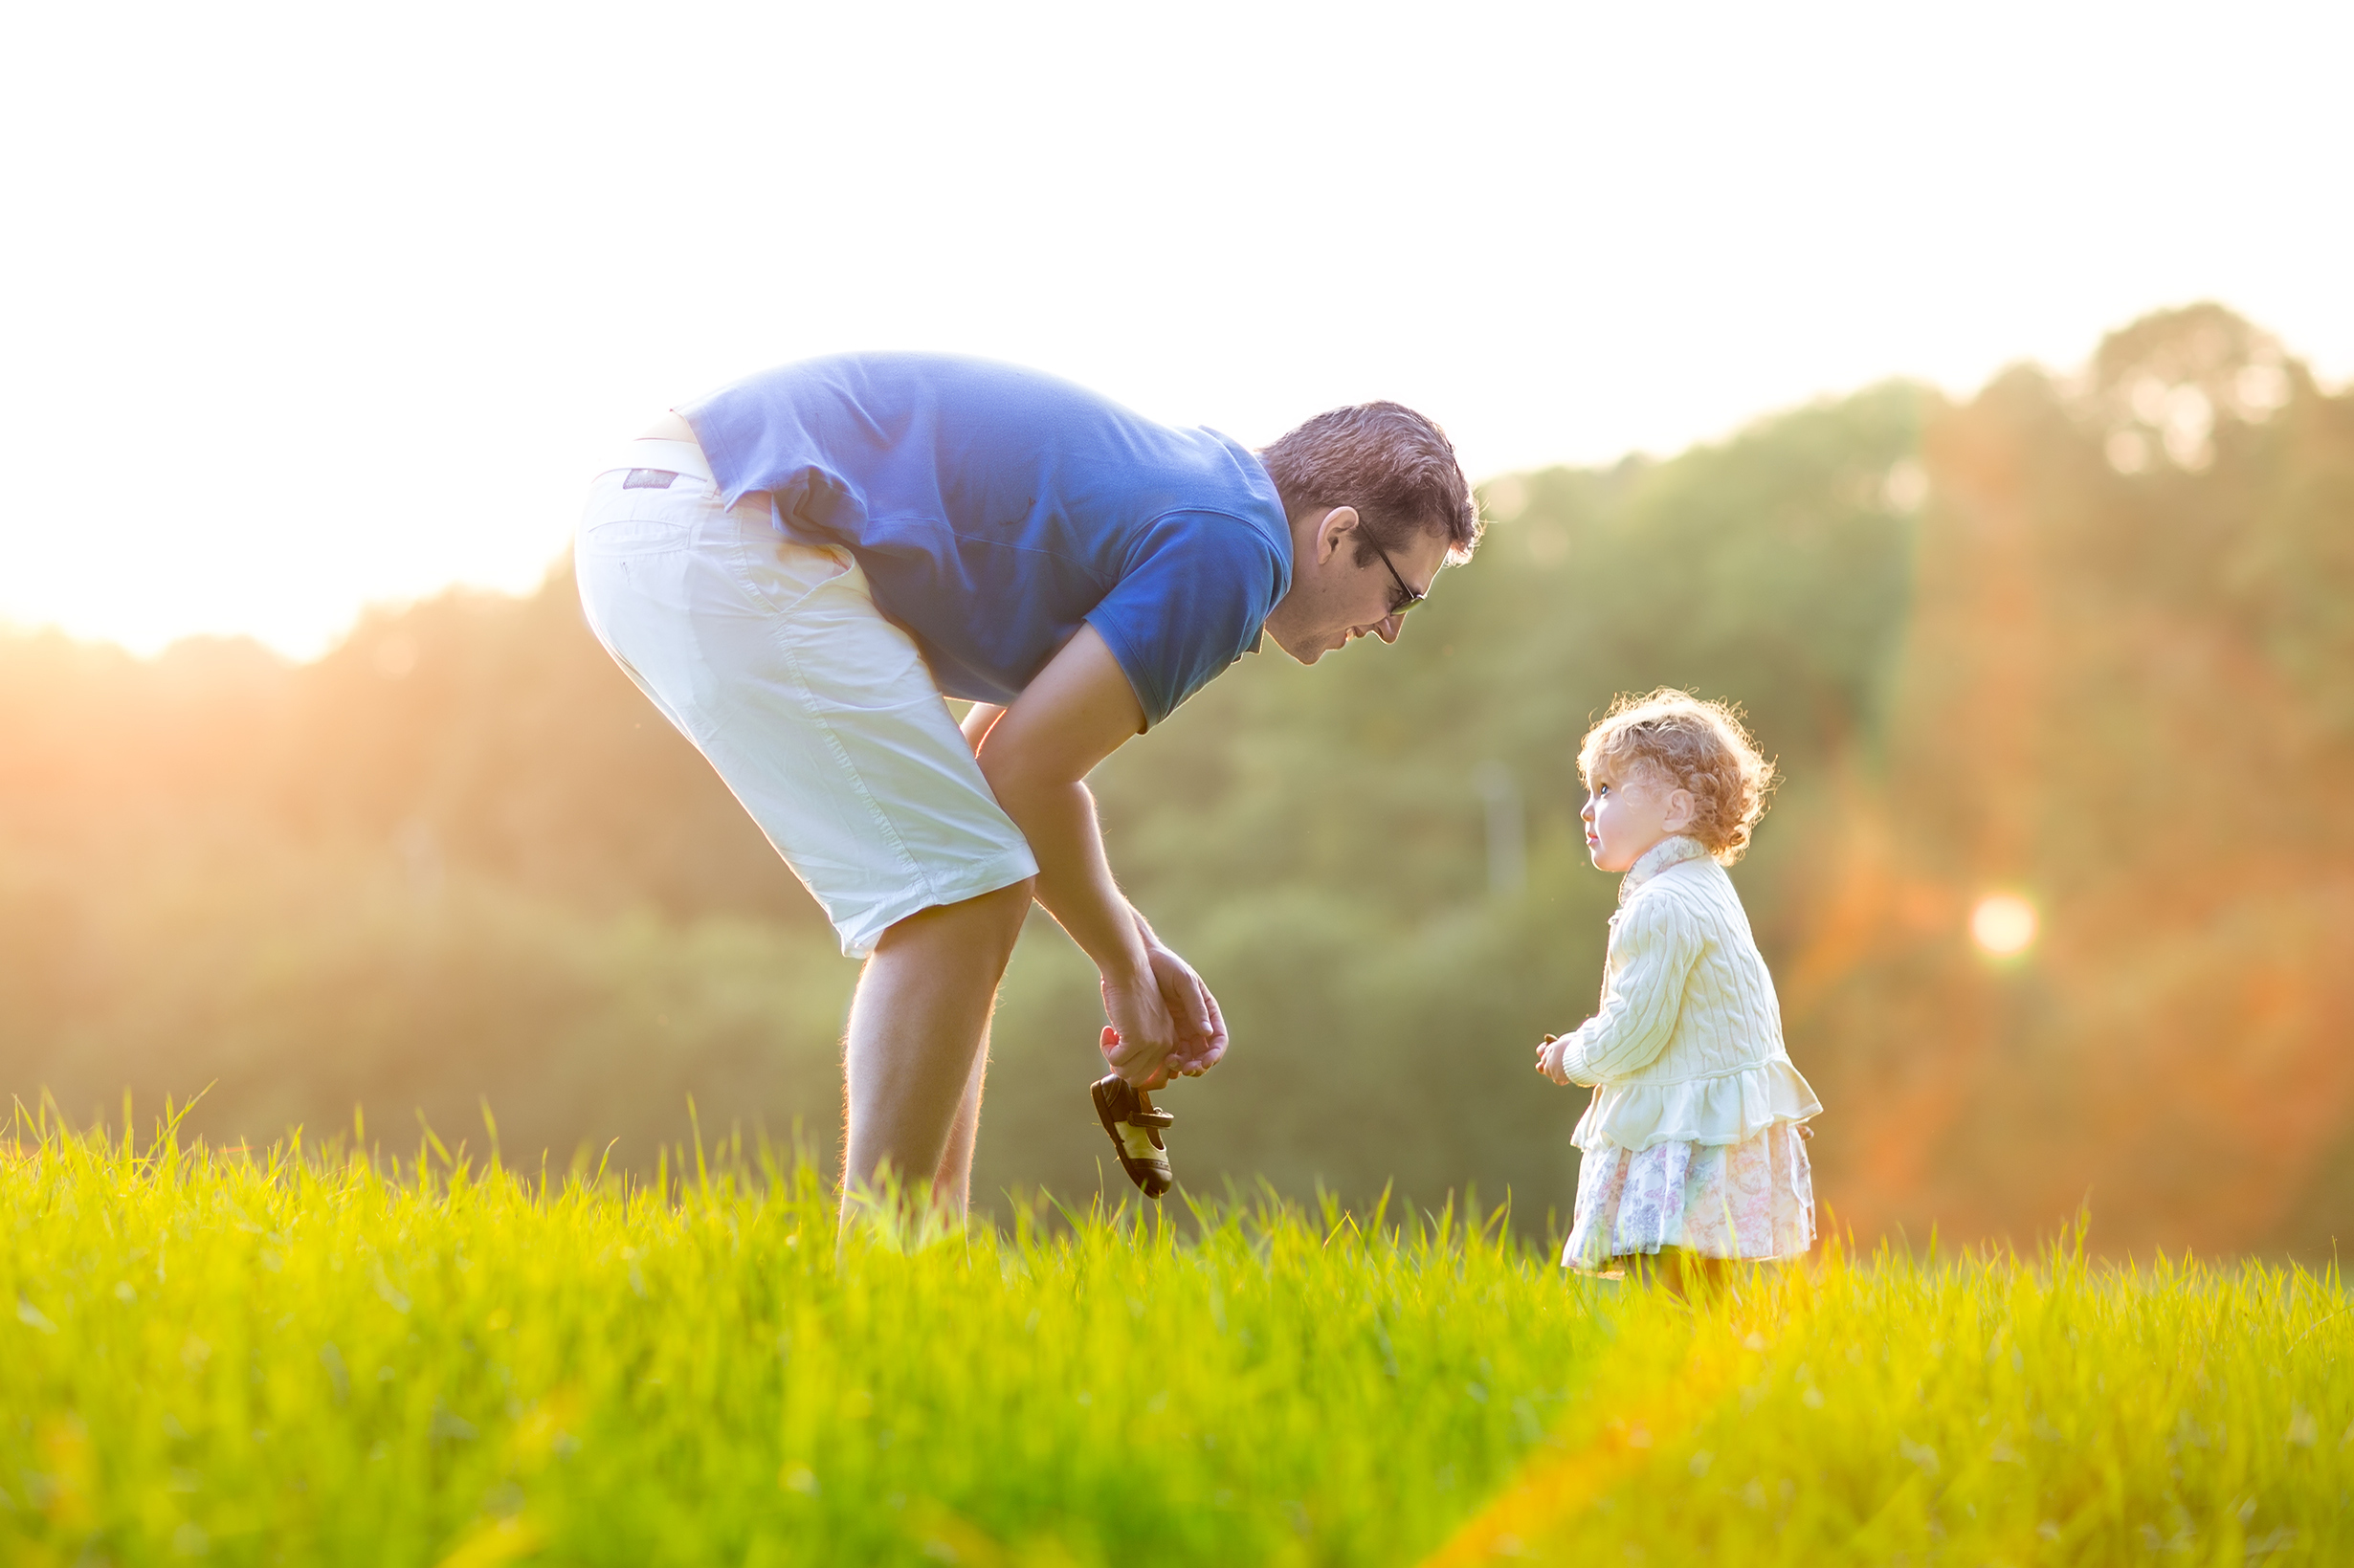 Young father playing with his baby daughter in a field on a sunny autumn evening